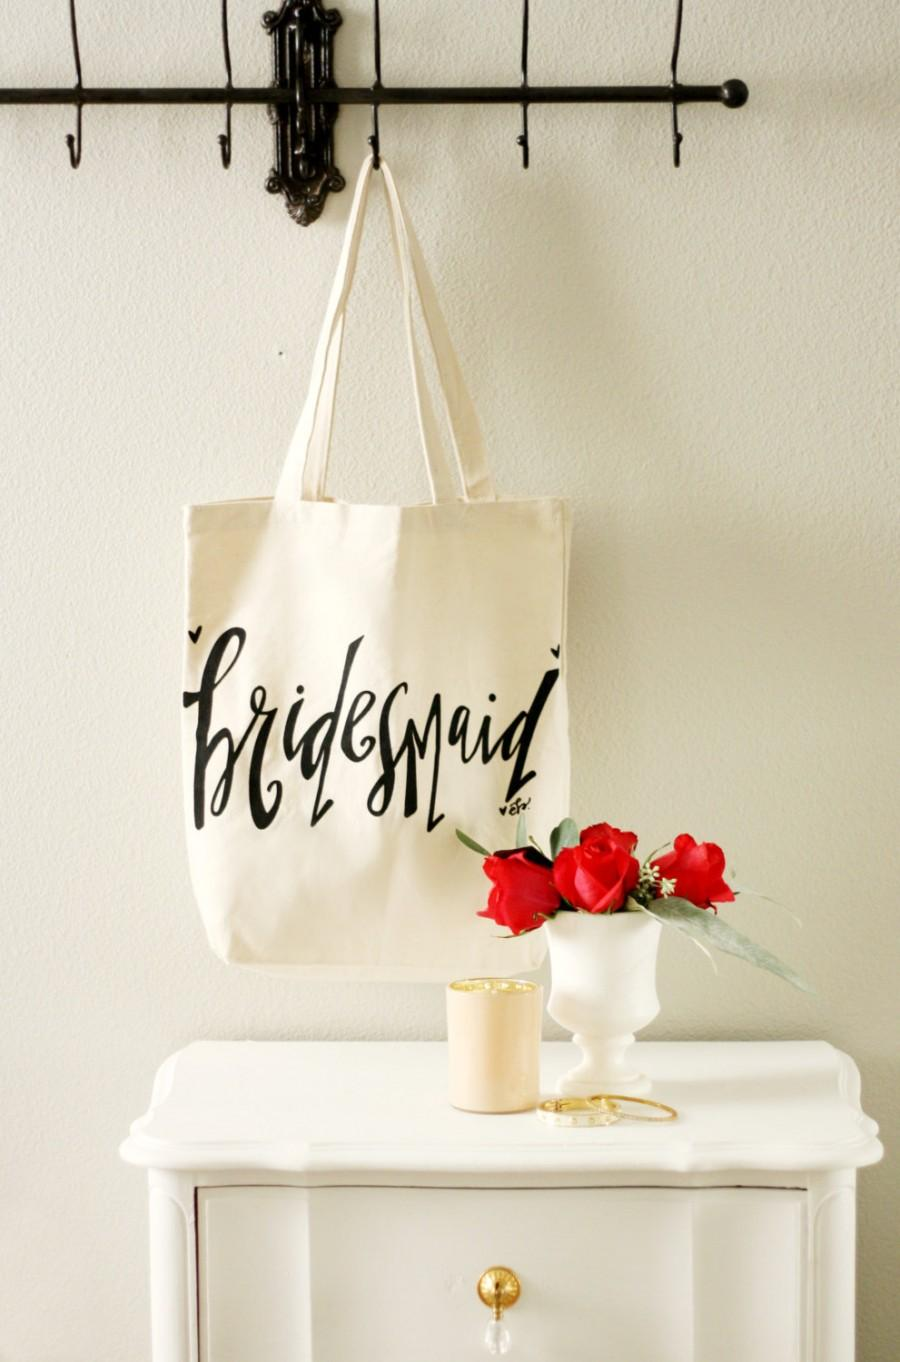 Свадьба - Bridesmaid Tote Bags - Bridesmaid Gift, Maid of Honor Gift, Favor Bags, Gift Bags, Bridal Party Bags Bride Bag Wedding Tote Bag